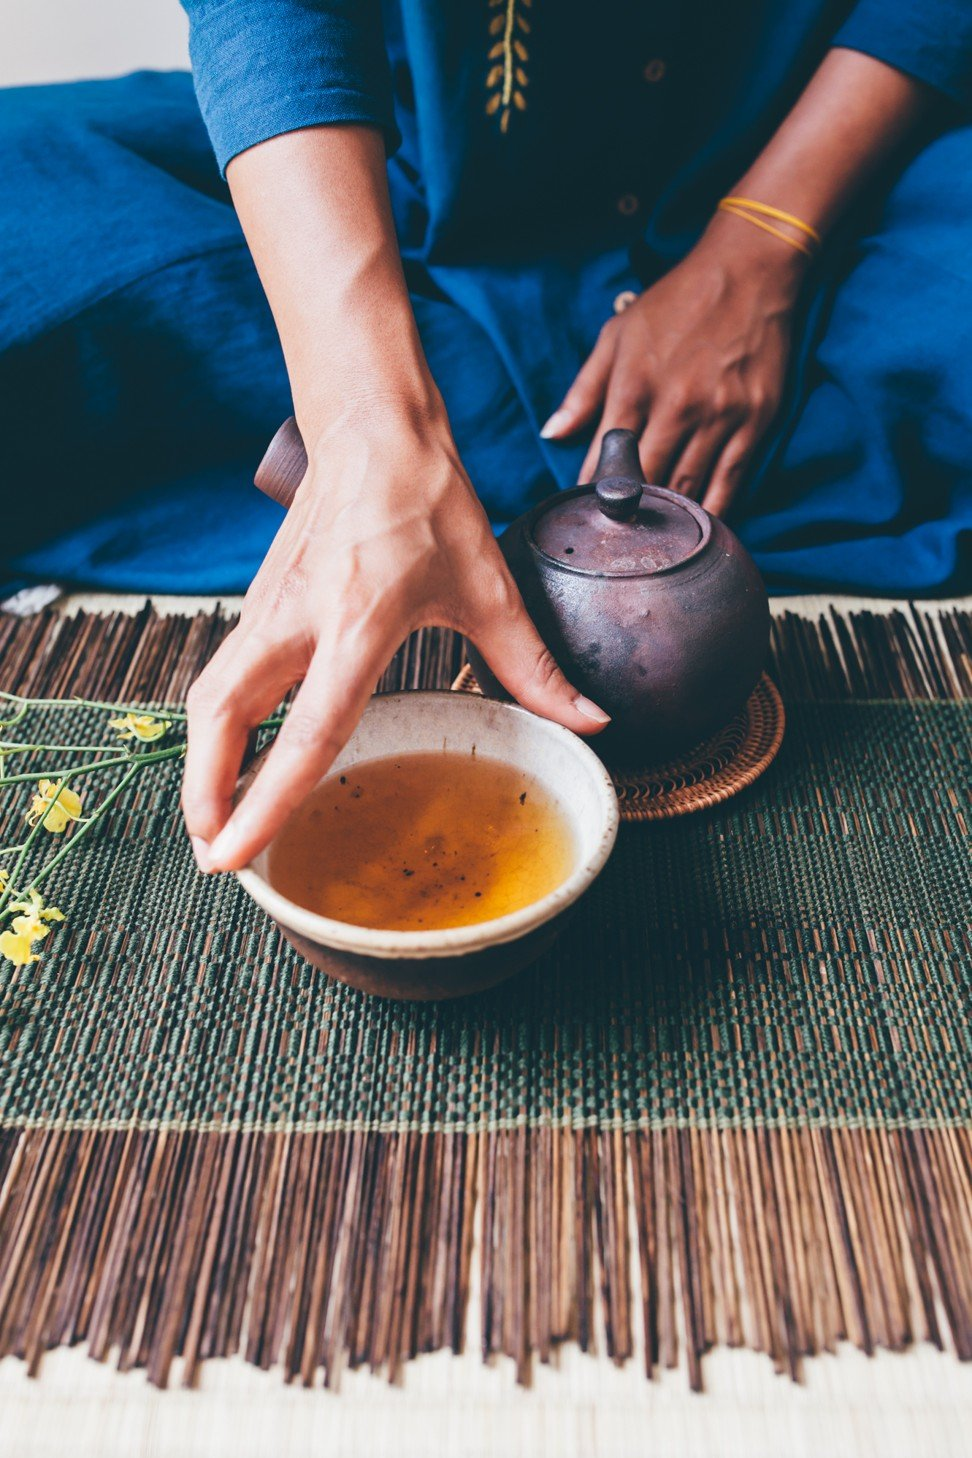 Tea meditation – what it is, and how it can improve mental health and well-being